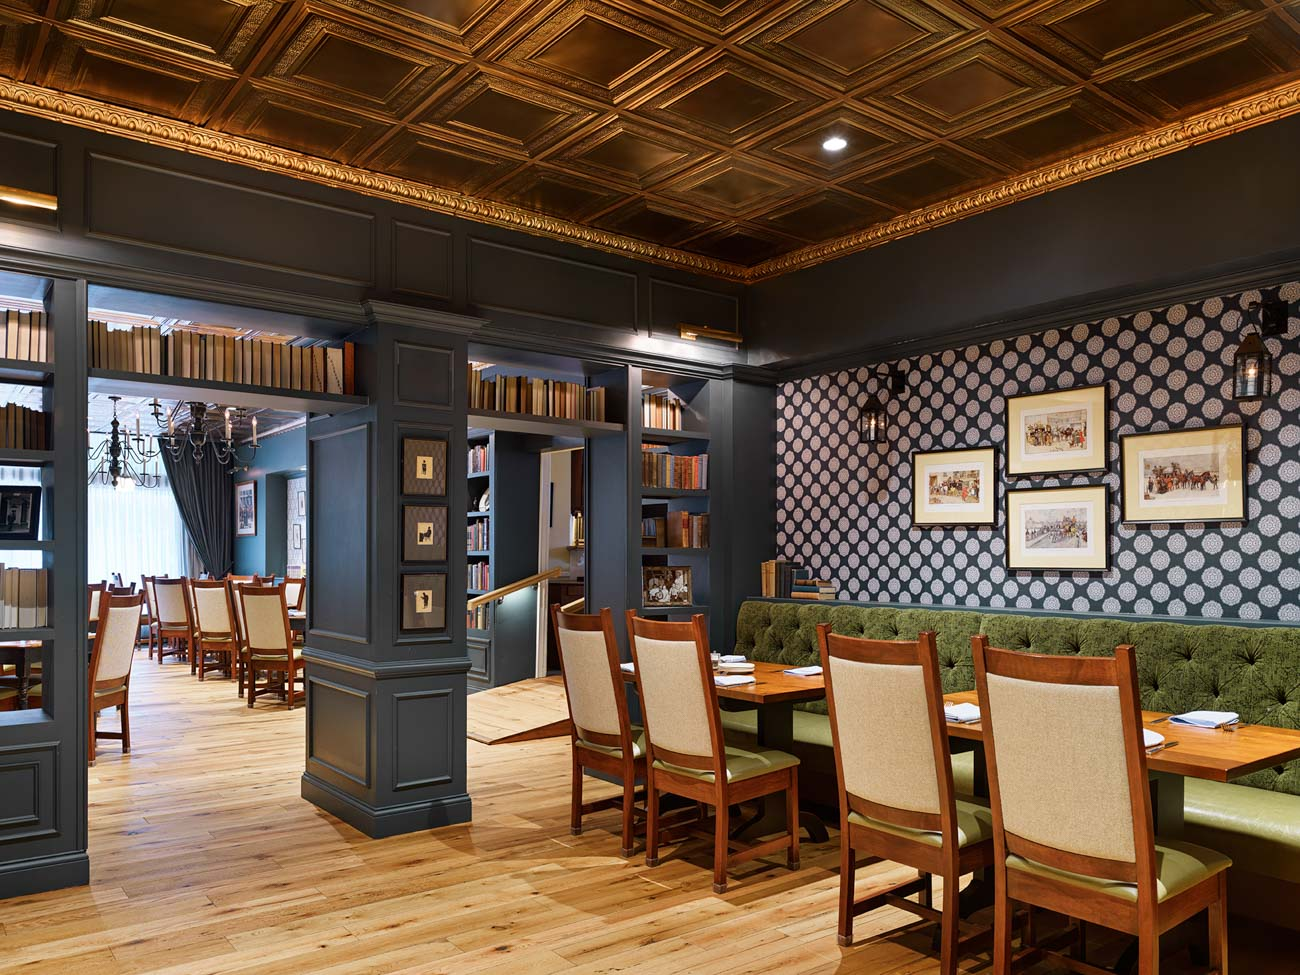 The Dickens Dining Room renovation at The Golden Lamb / Image courtesy of The Golden Lamb // Published: 10.16.20